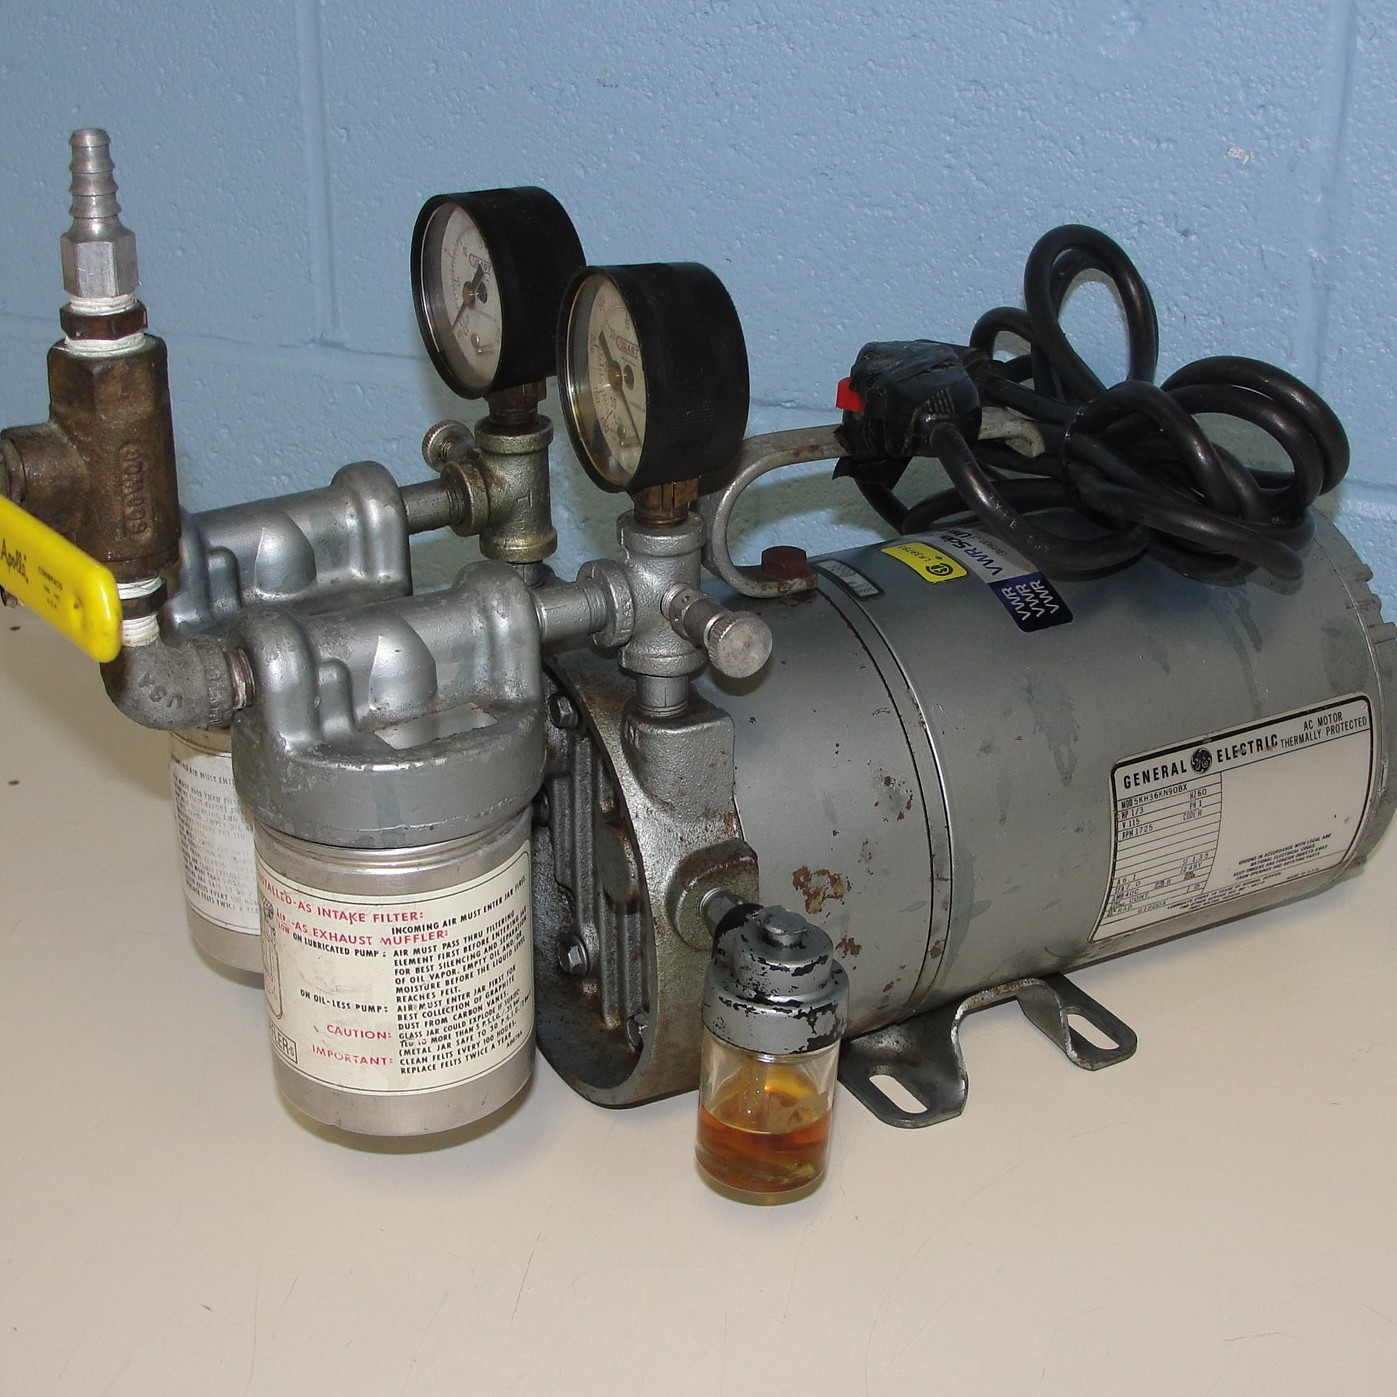 VWR Vacuum Pump 1/3 HP Model 5KH36KN90BX Image